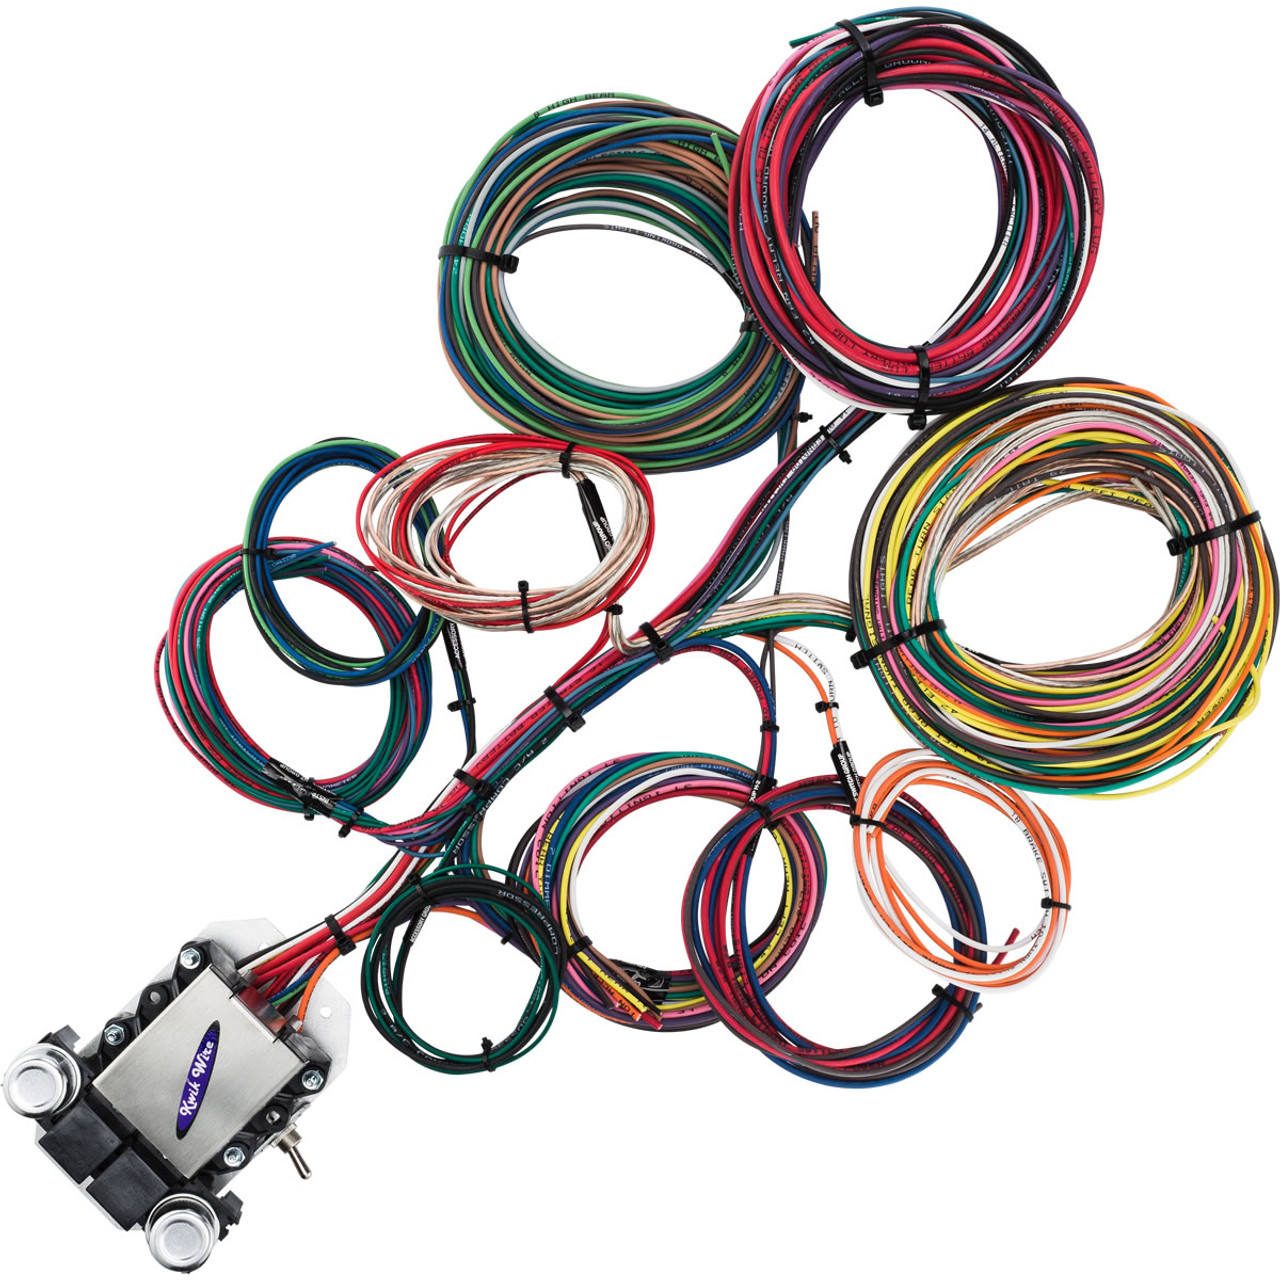 14 Circuit Ford Wire Harness - KwikWire.com   Electrify Your Ride